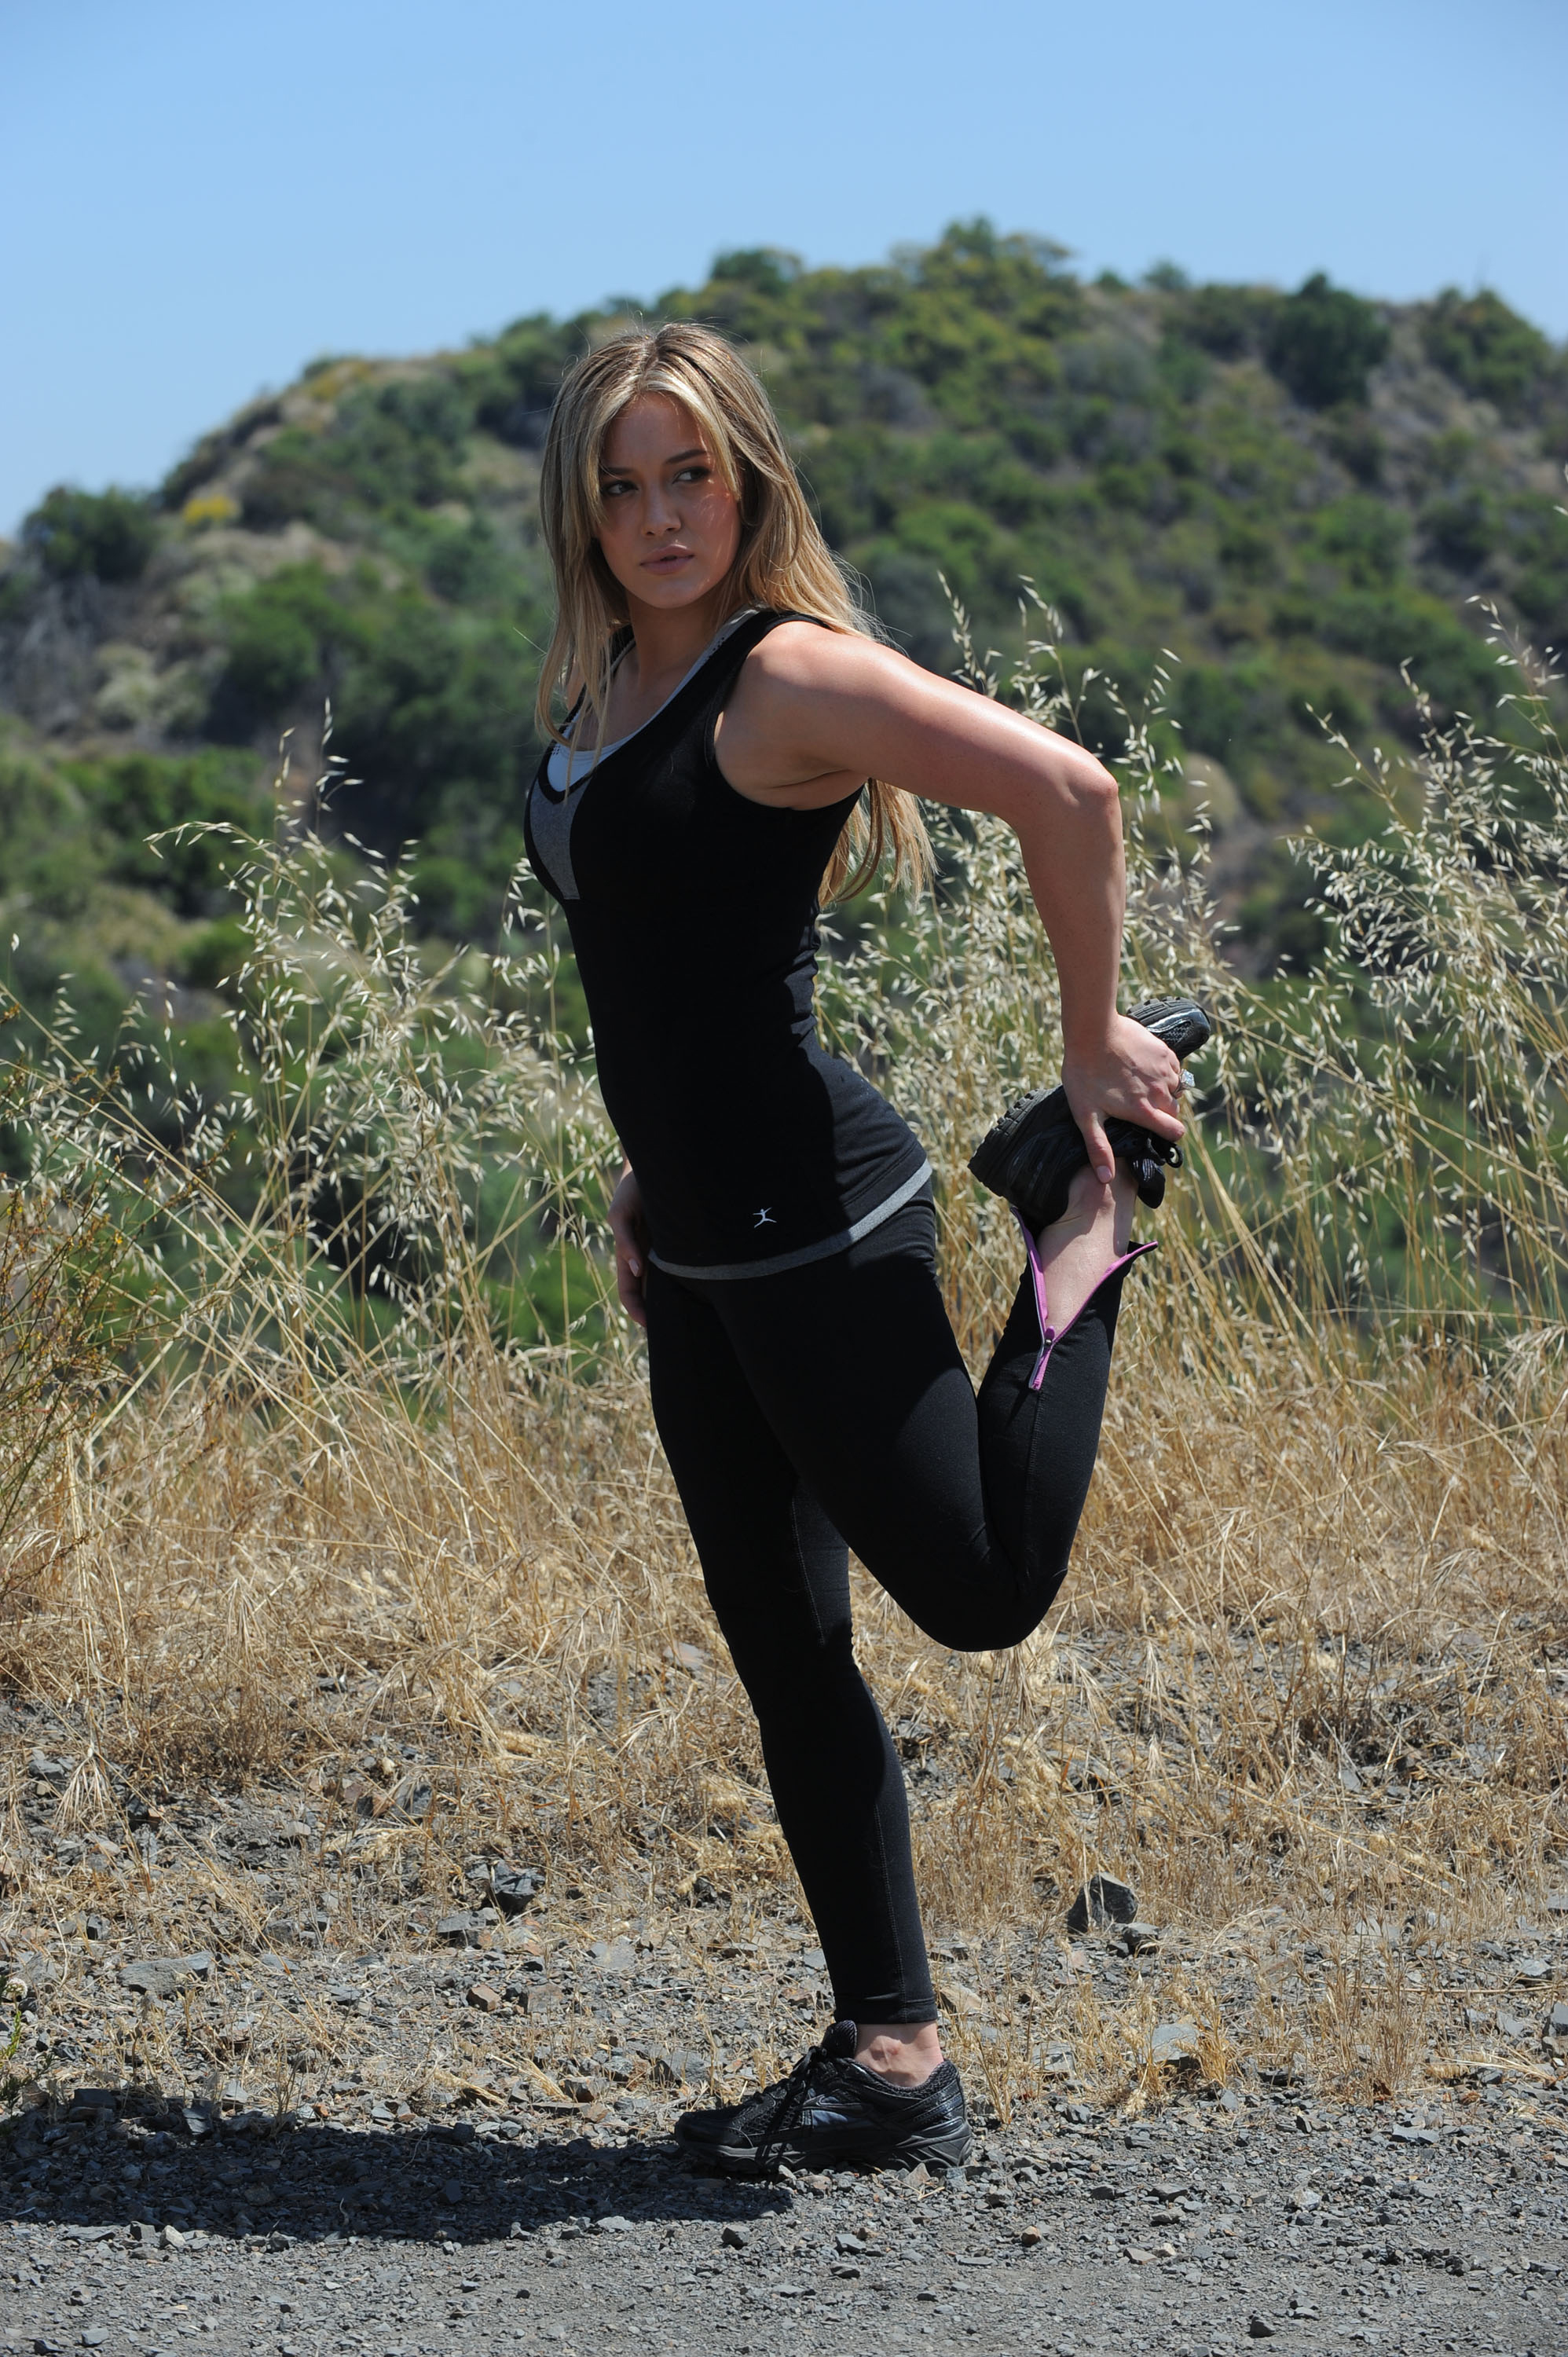 Hilary Duff In Sports Bra And Black Tight Shorts In 2011